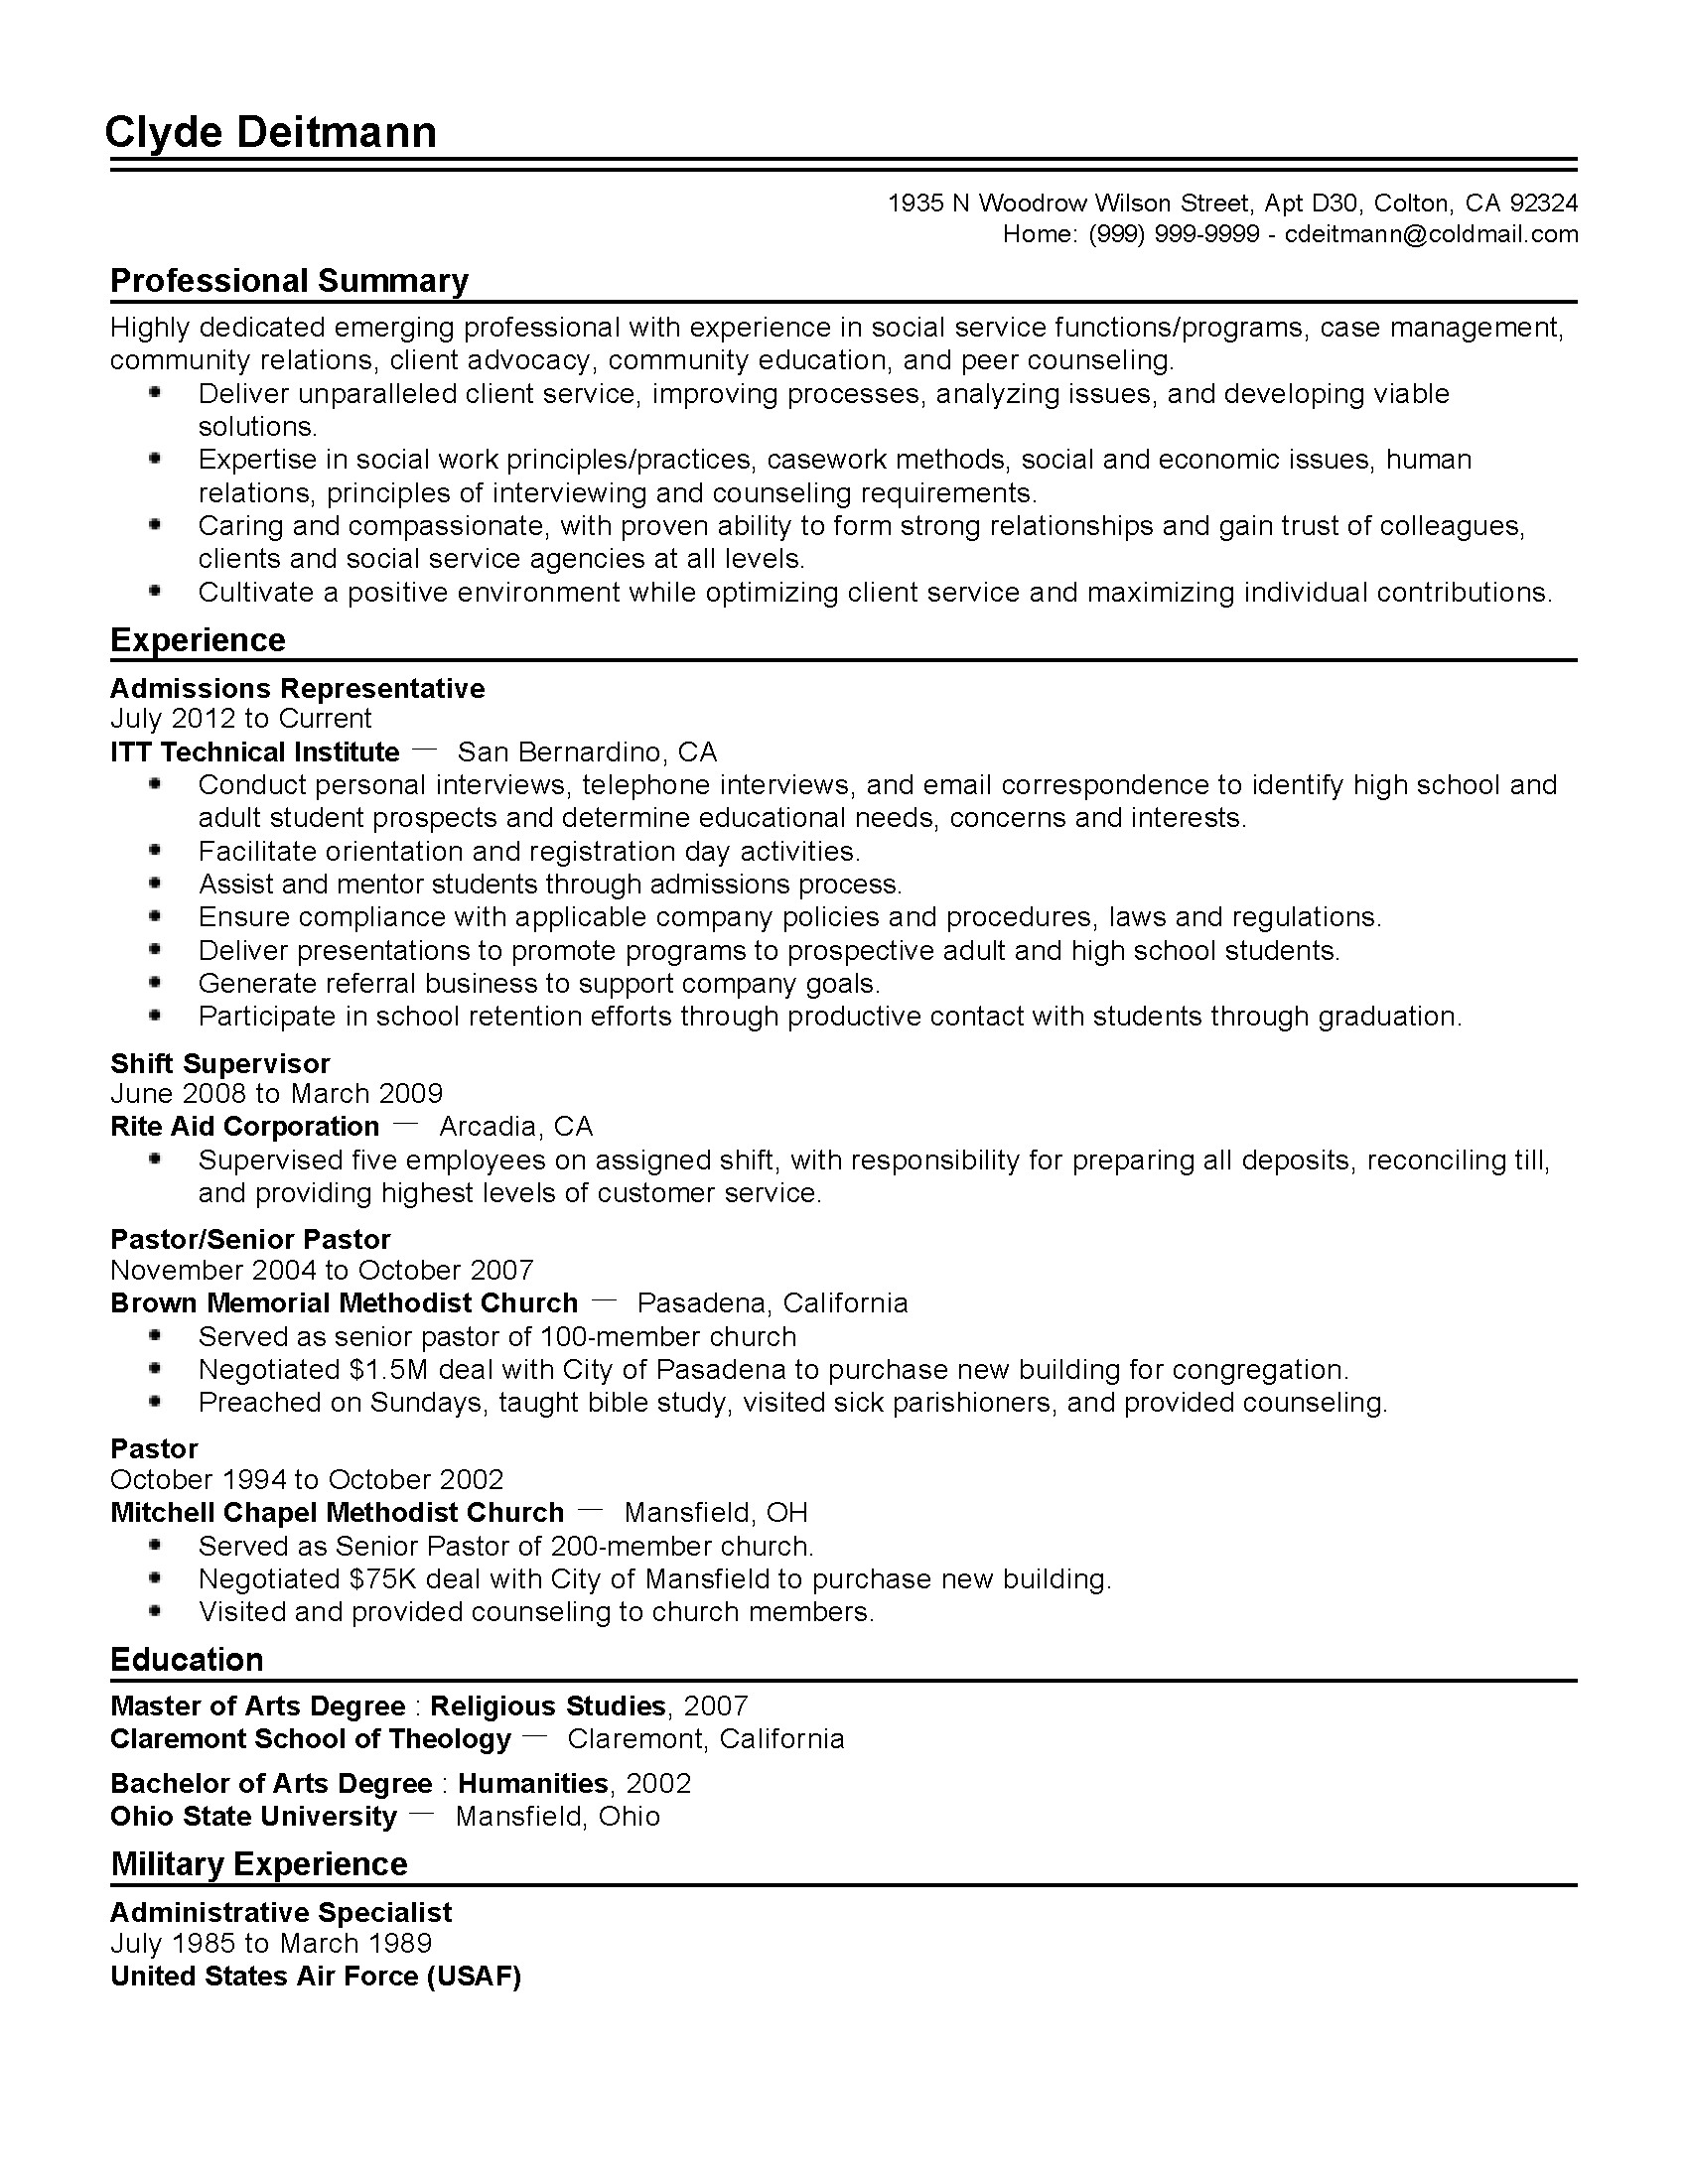 College Admissions Resume Template Professional Admissions Representative Templates to